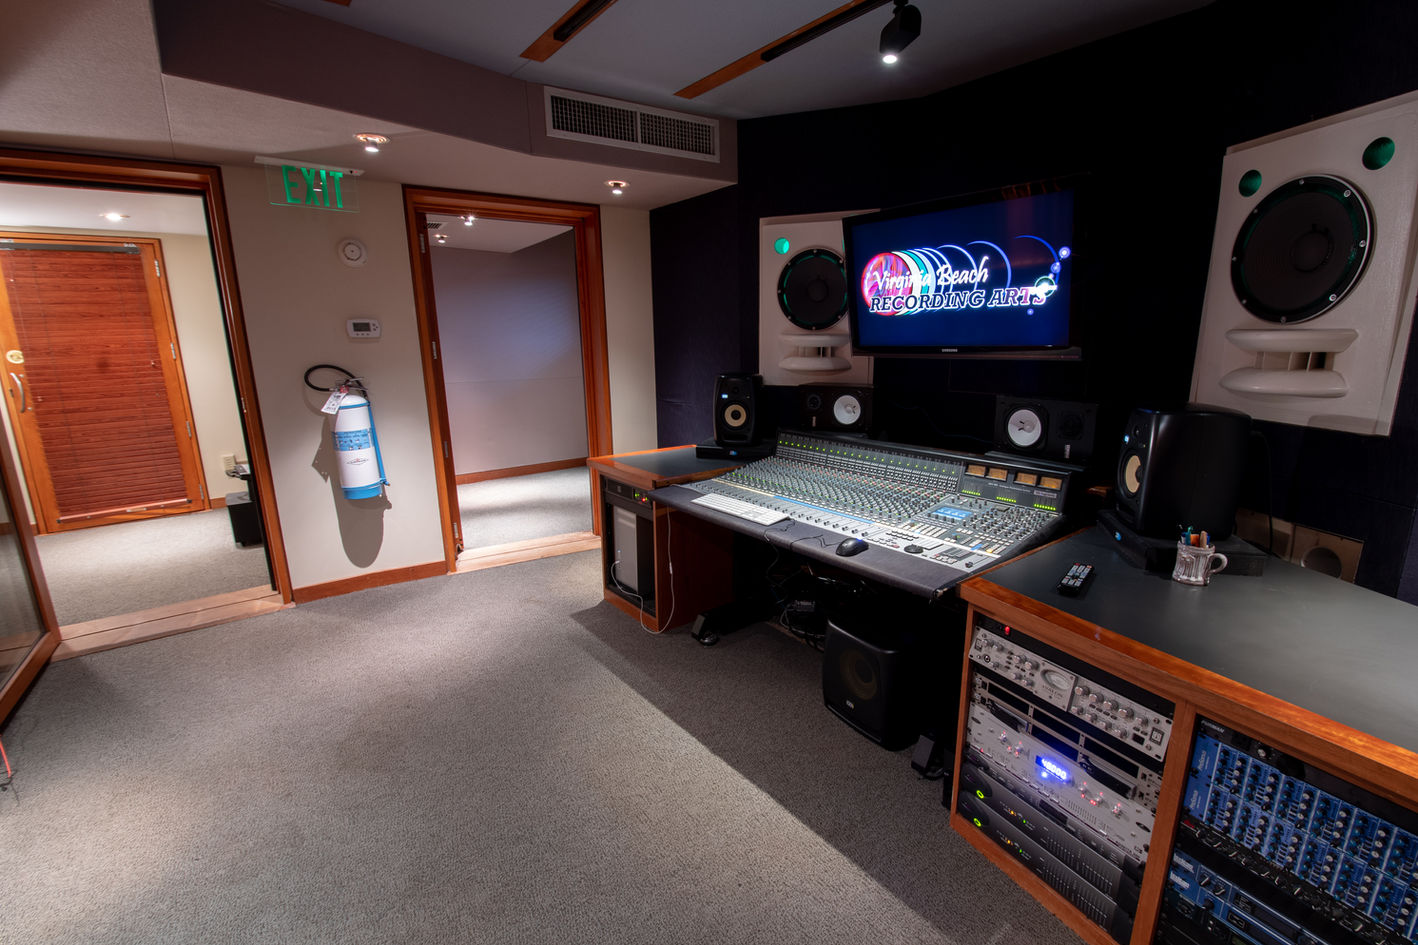 Virginia Beach Recording Arts Studio B Viewing Iso and Sound Lock